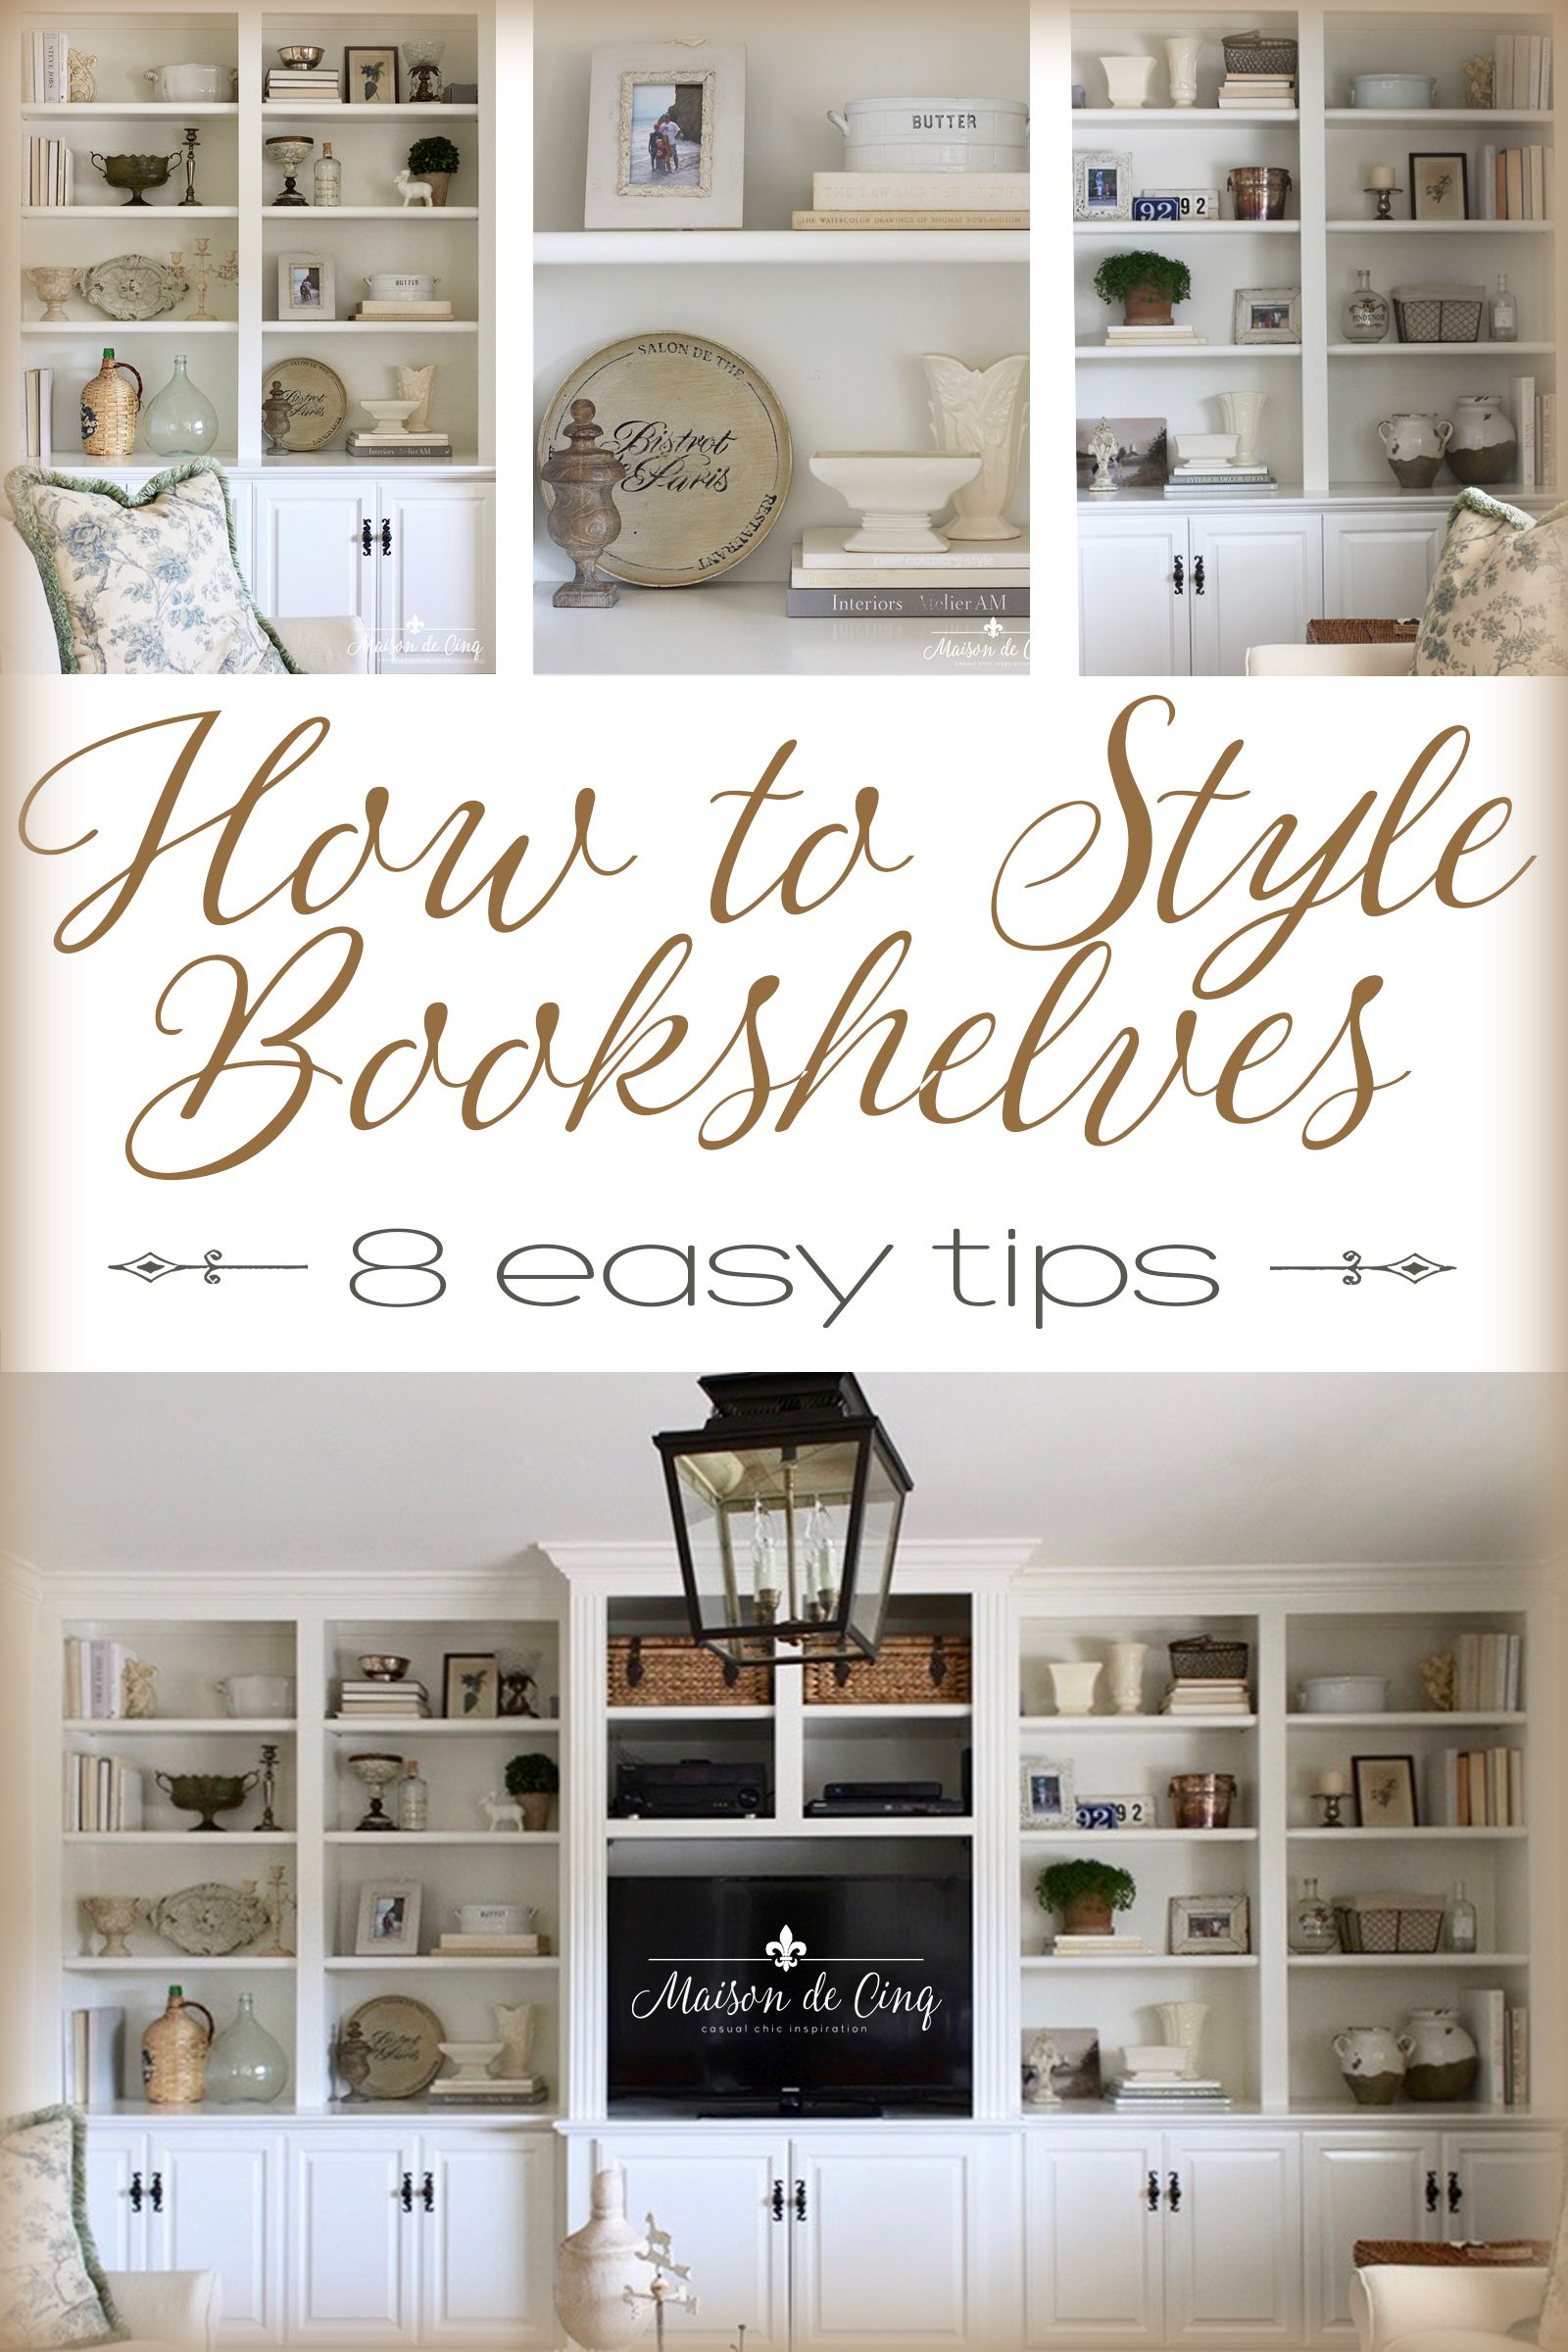 How To Style Book Shelves 8 Easy Tips Shelfstyling Shelfie Frenchcountry Bookshelves In Living Room Built In Shelves Living Room Shelf Decor Living Room